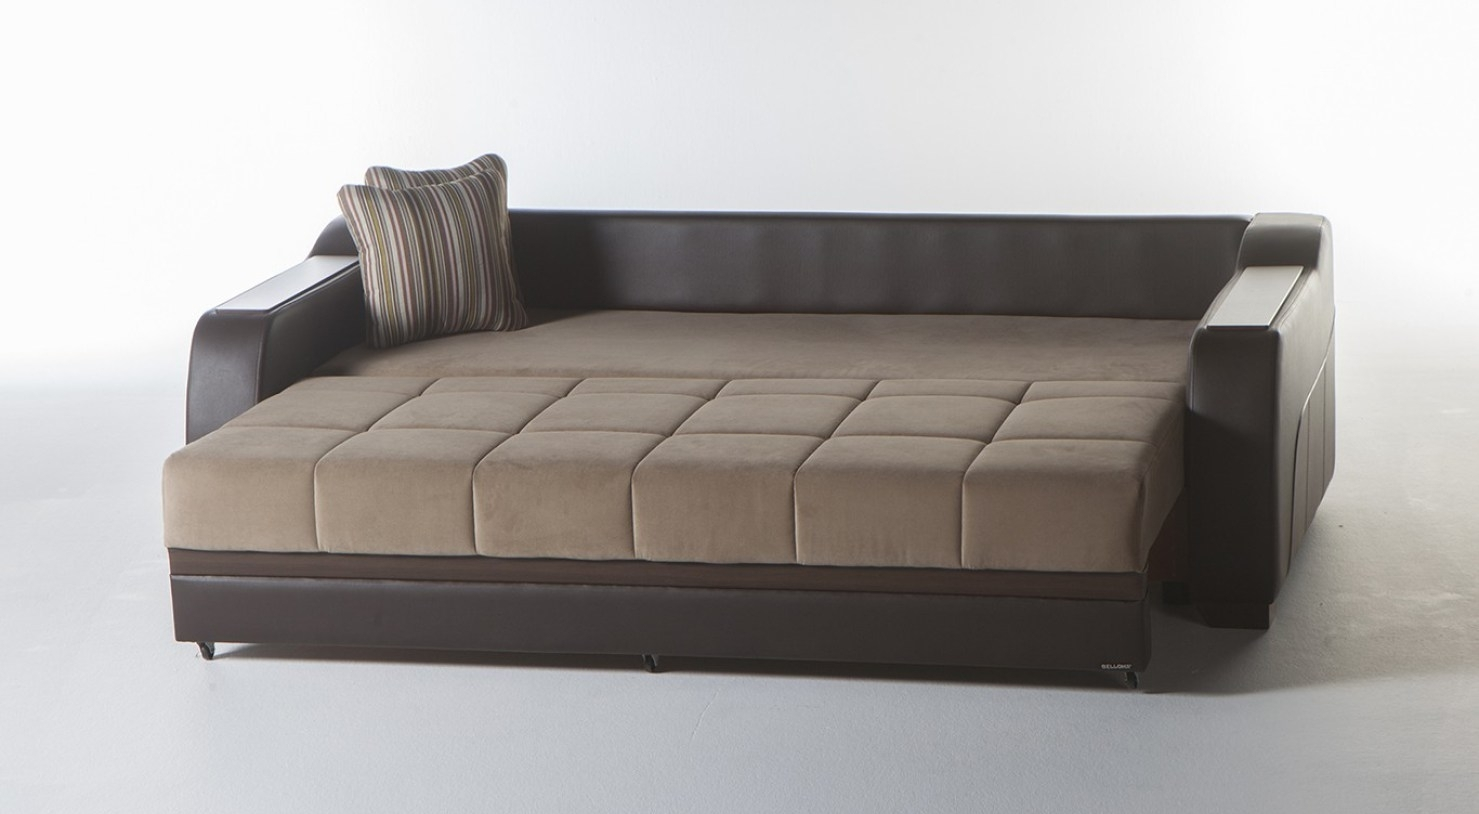 Hideaway Sofa Bed Philippines | Catosfera With Philippines Sectional Sofas (Image 3 of 10)